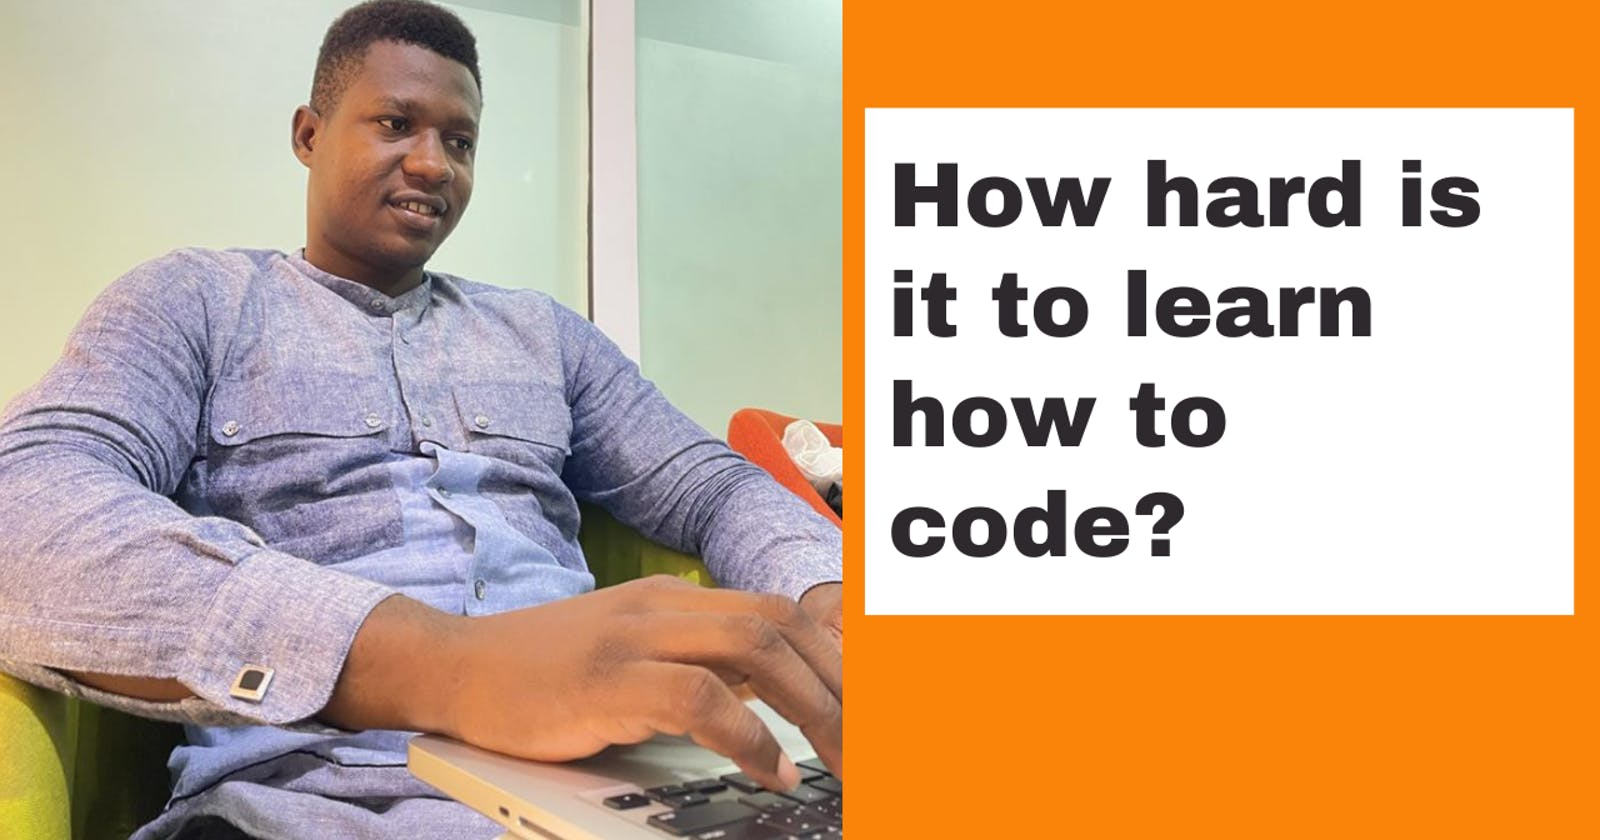 How hard is it to learn how to code?